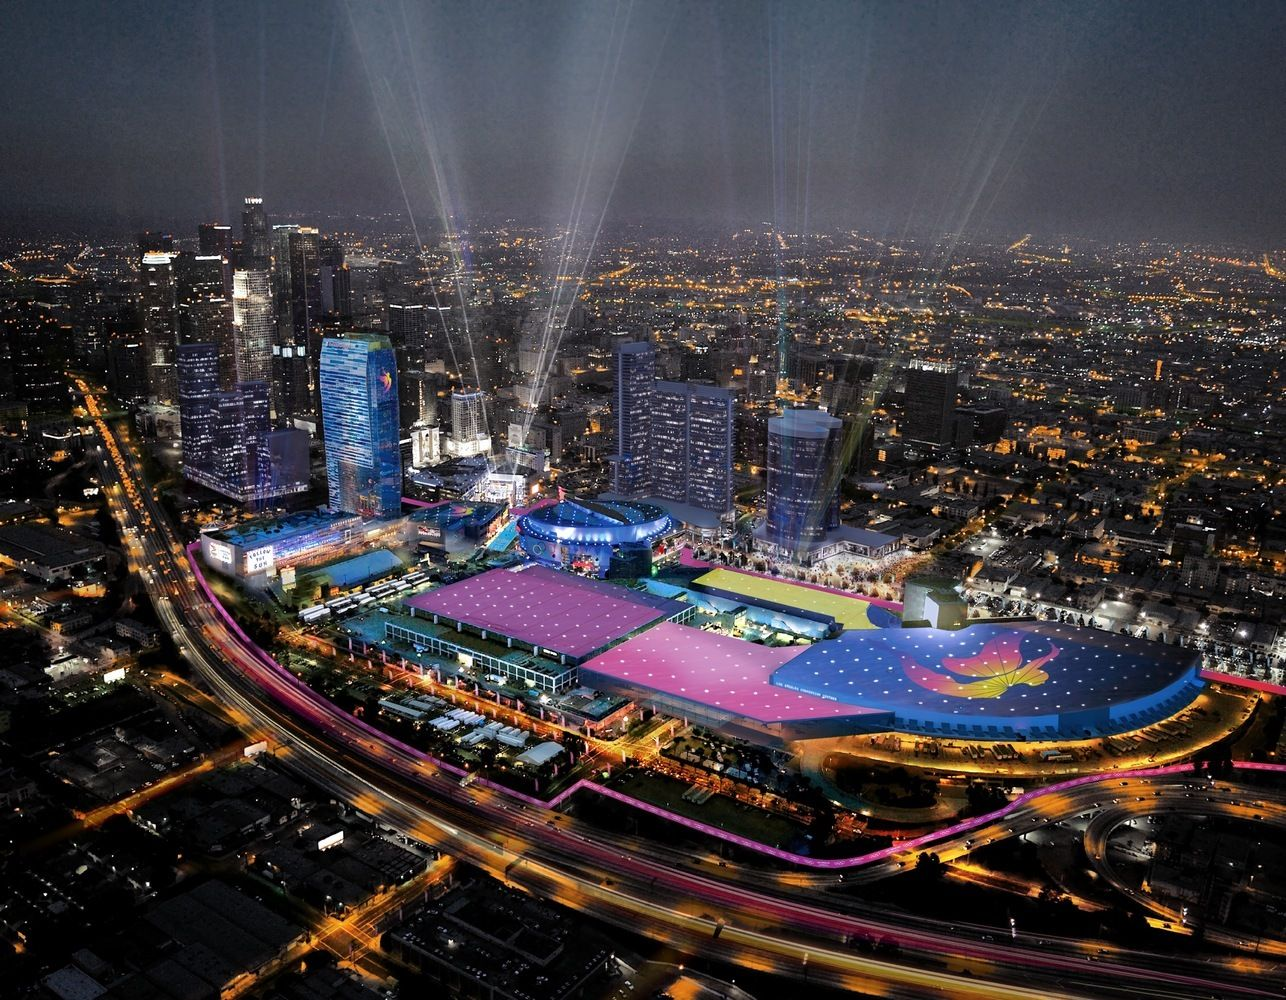 Gallery Of Paris And Los Angeles Selected As 2024 And 2028 Olympic Hosts 8 Olympics Los Angeles Los Angeles Rams